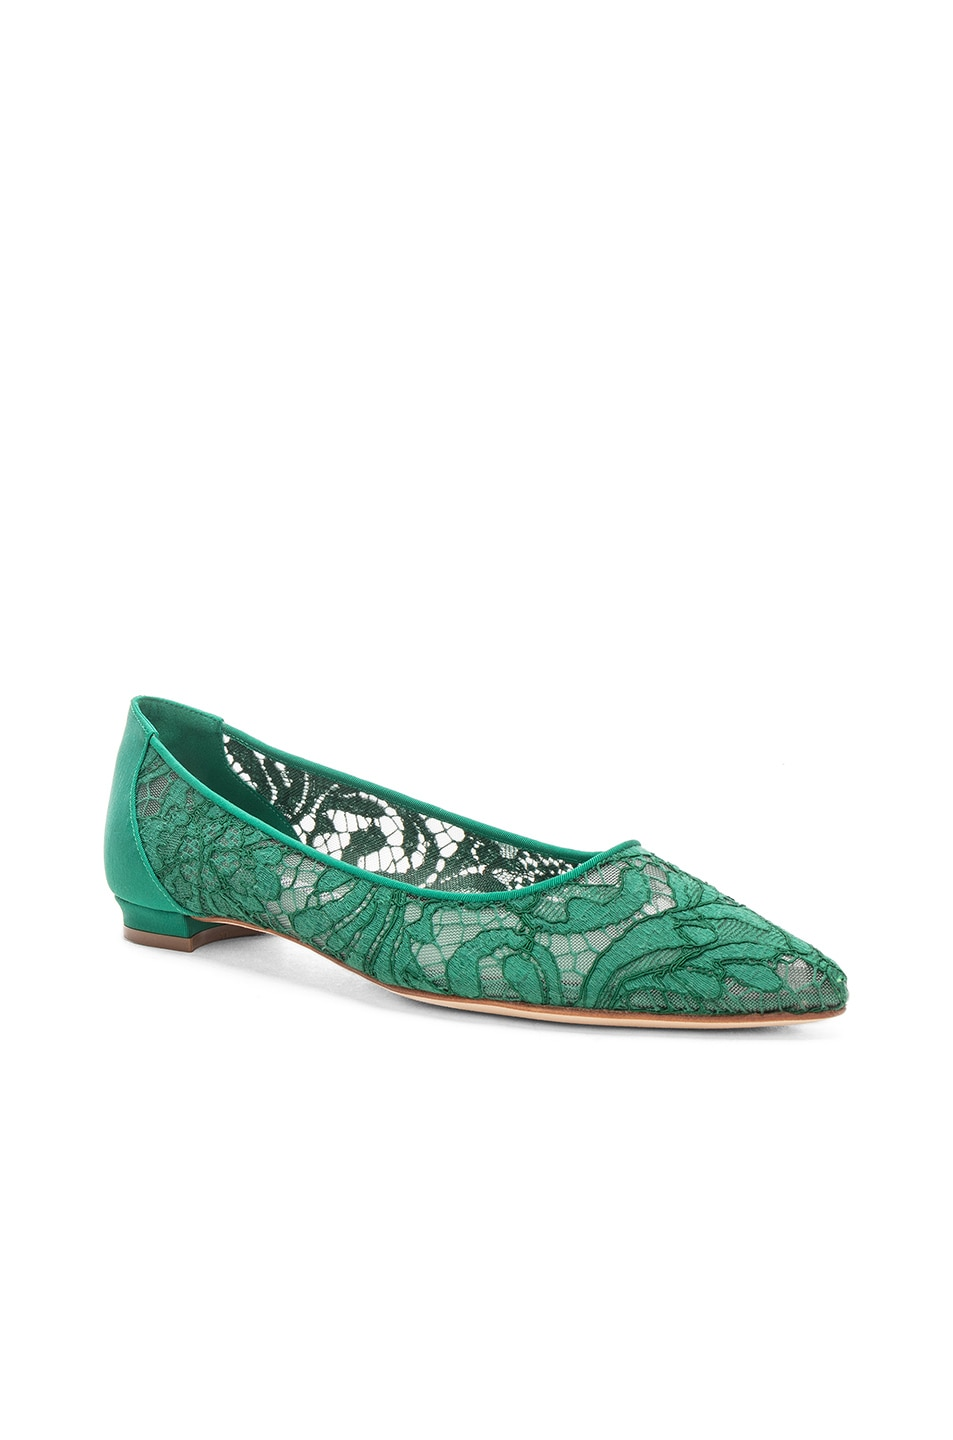 Image 2 of Manolo Blahnik Tittola Lace 10 Pea Flat in Emerald Green Marescot